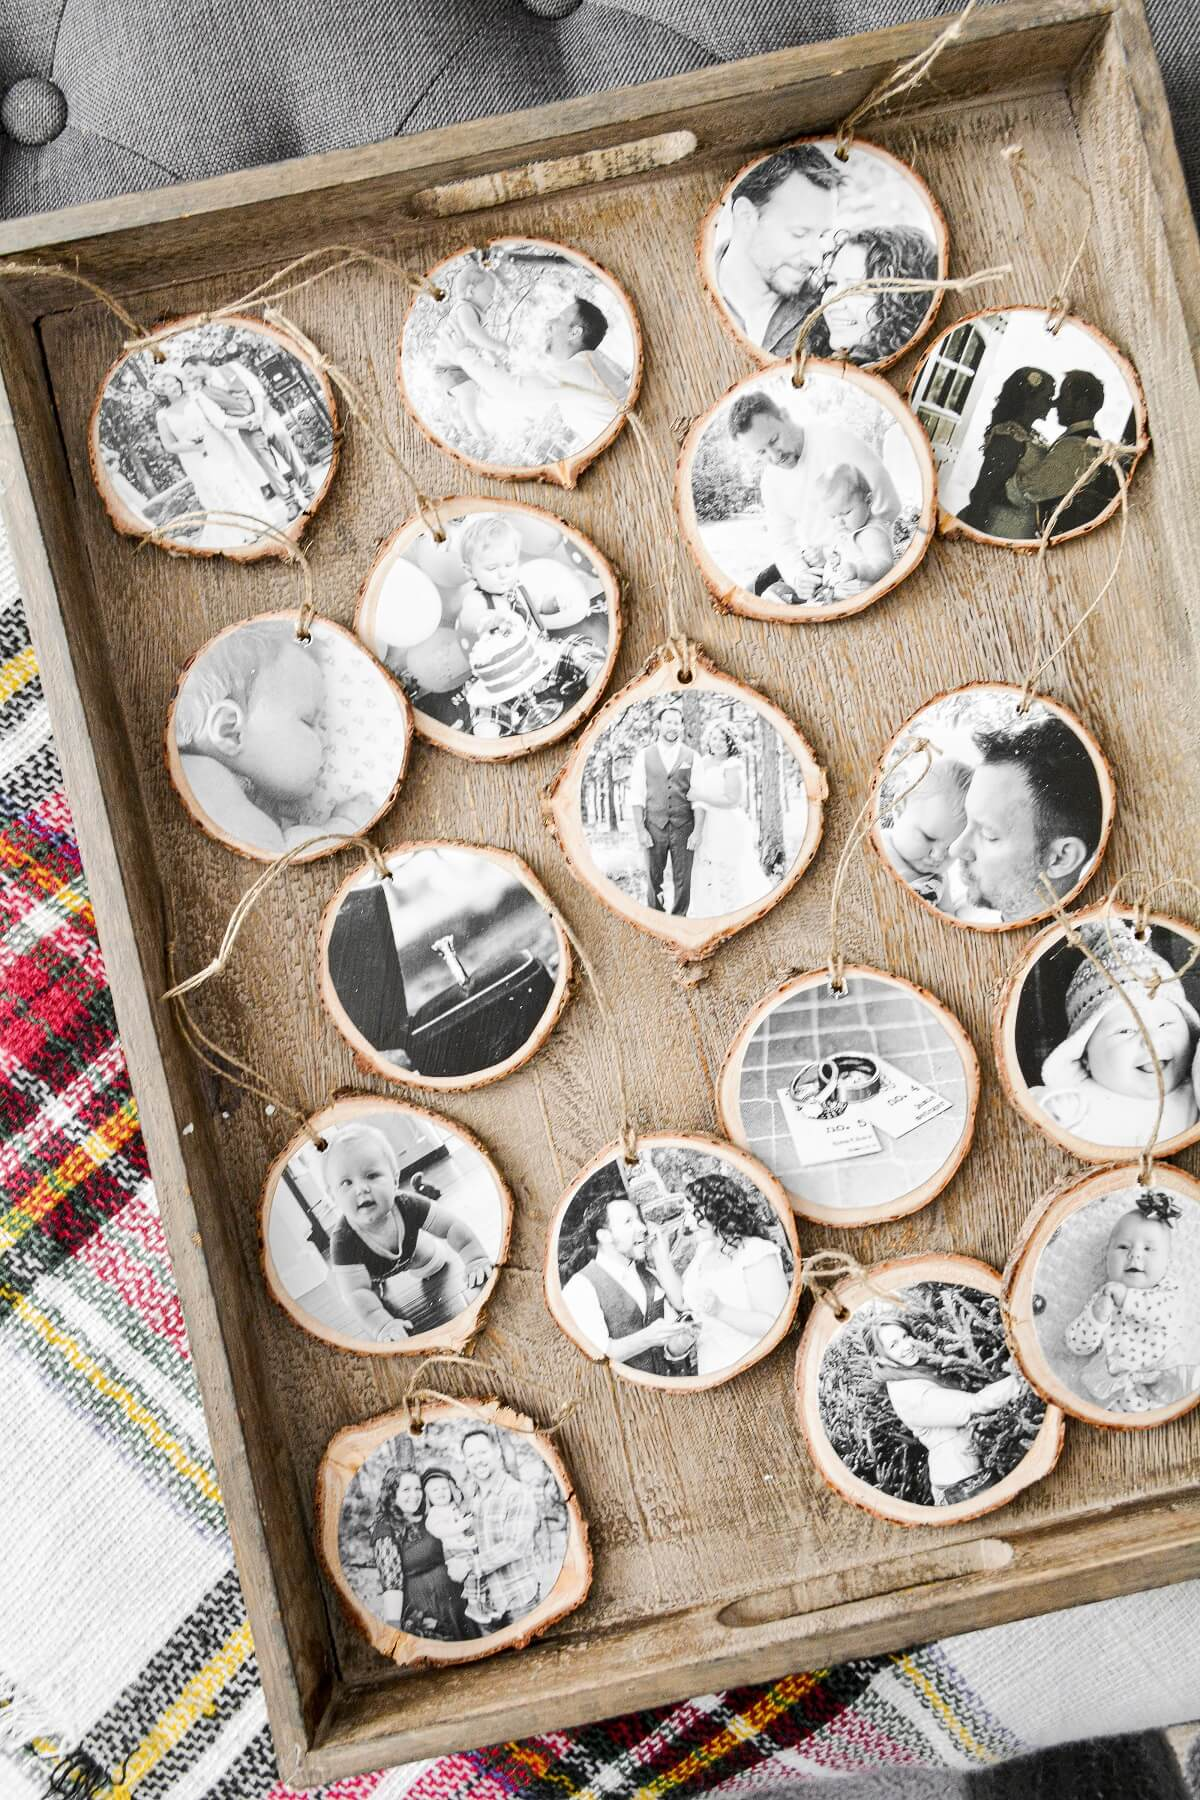 Homemade photo Christmas ornaments on a wooden tray.